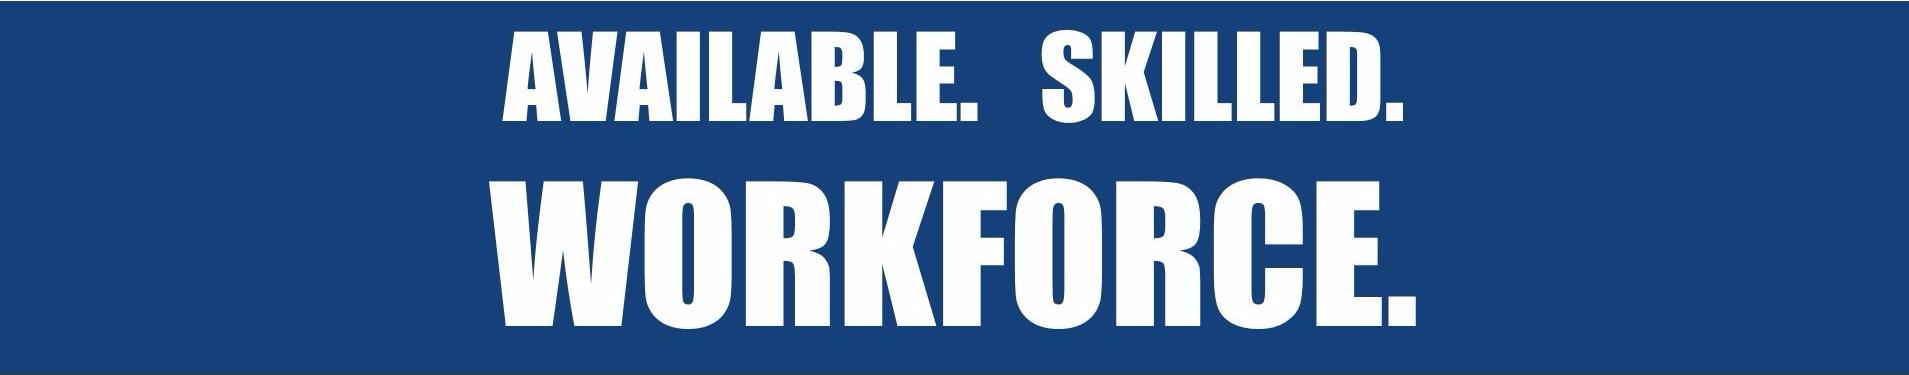 Available, Skilled Workforce.